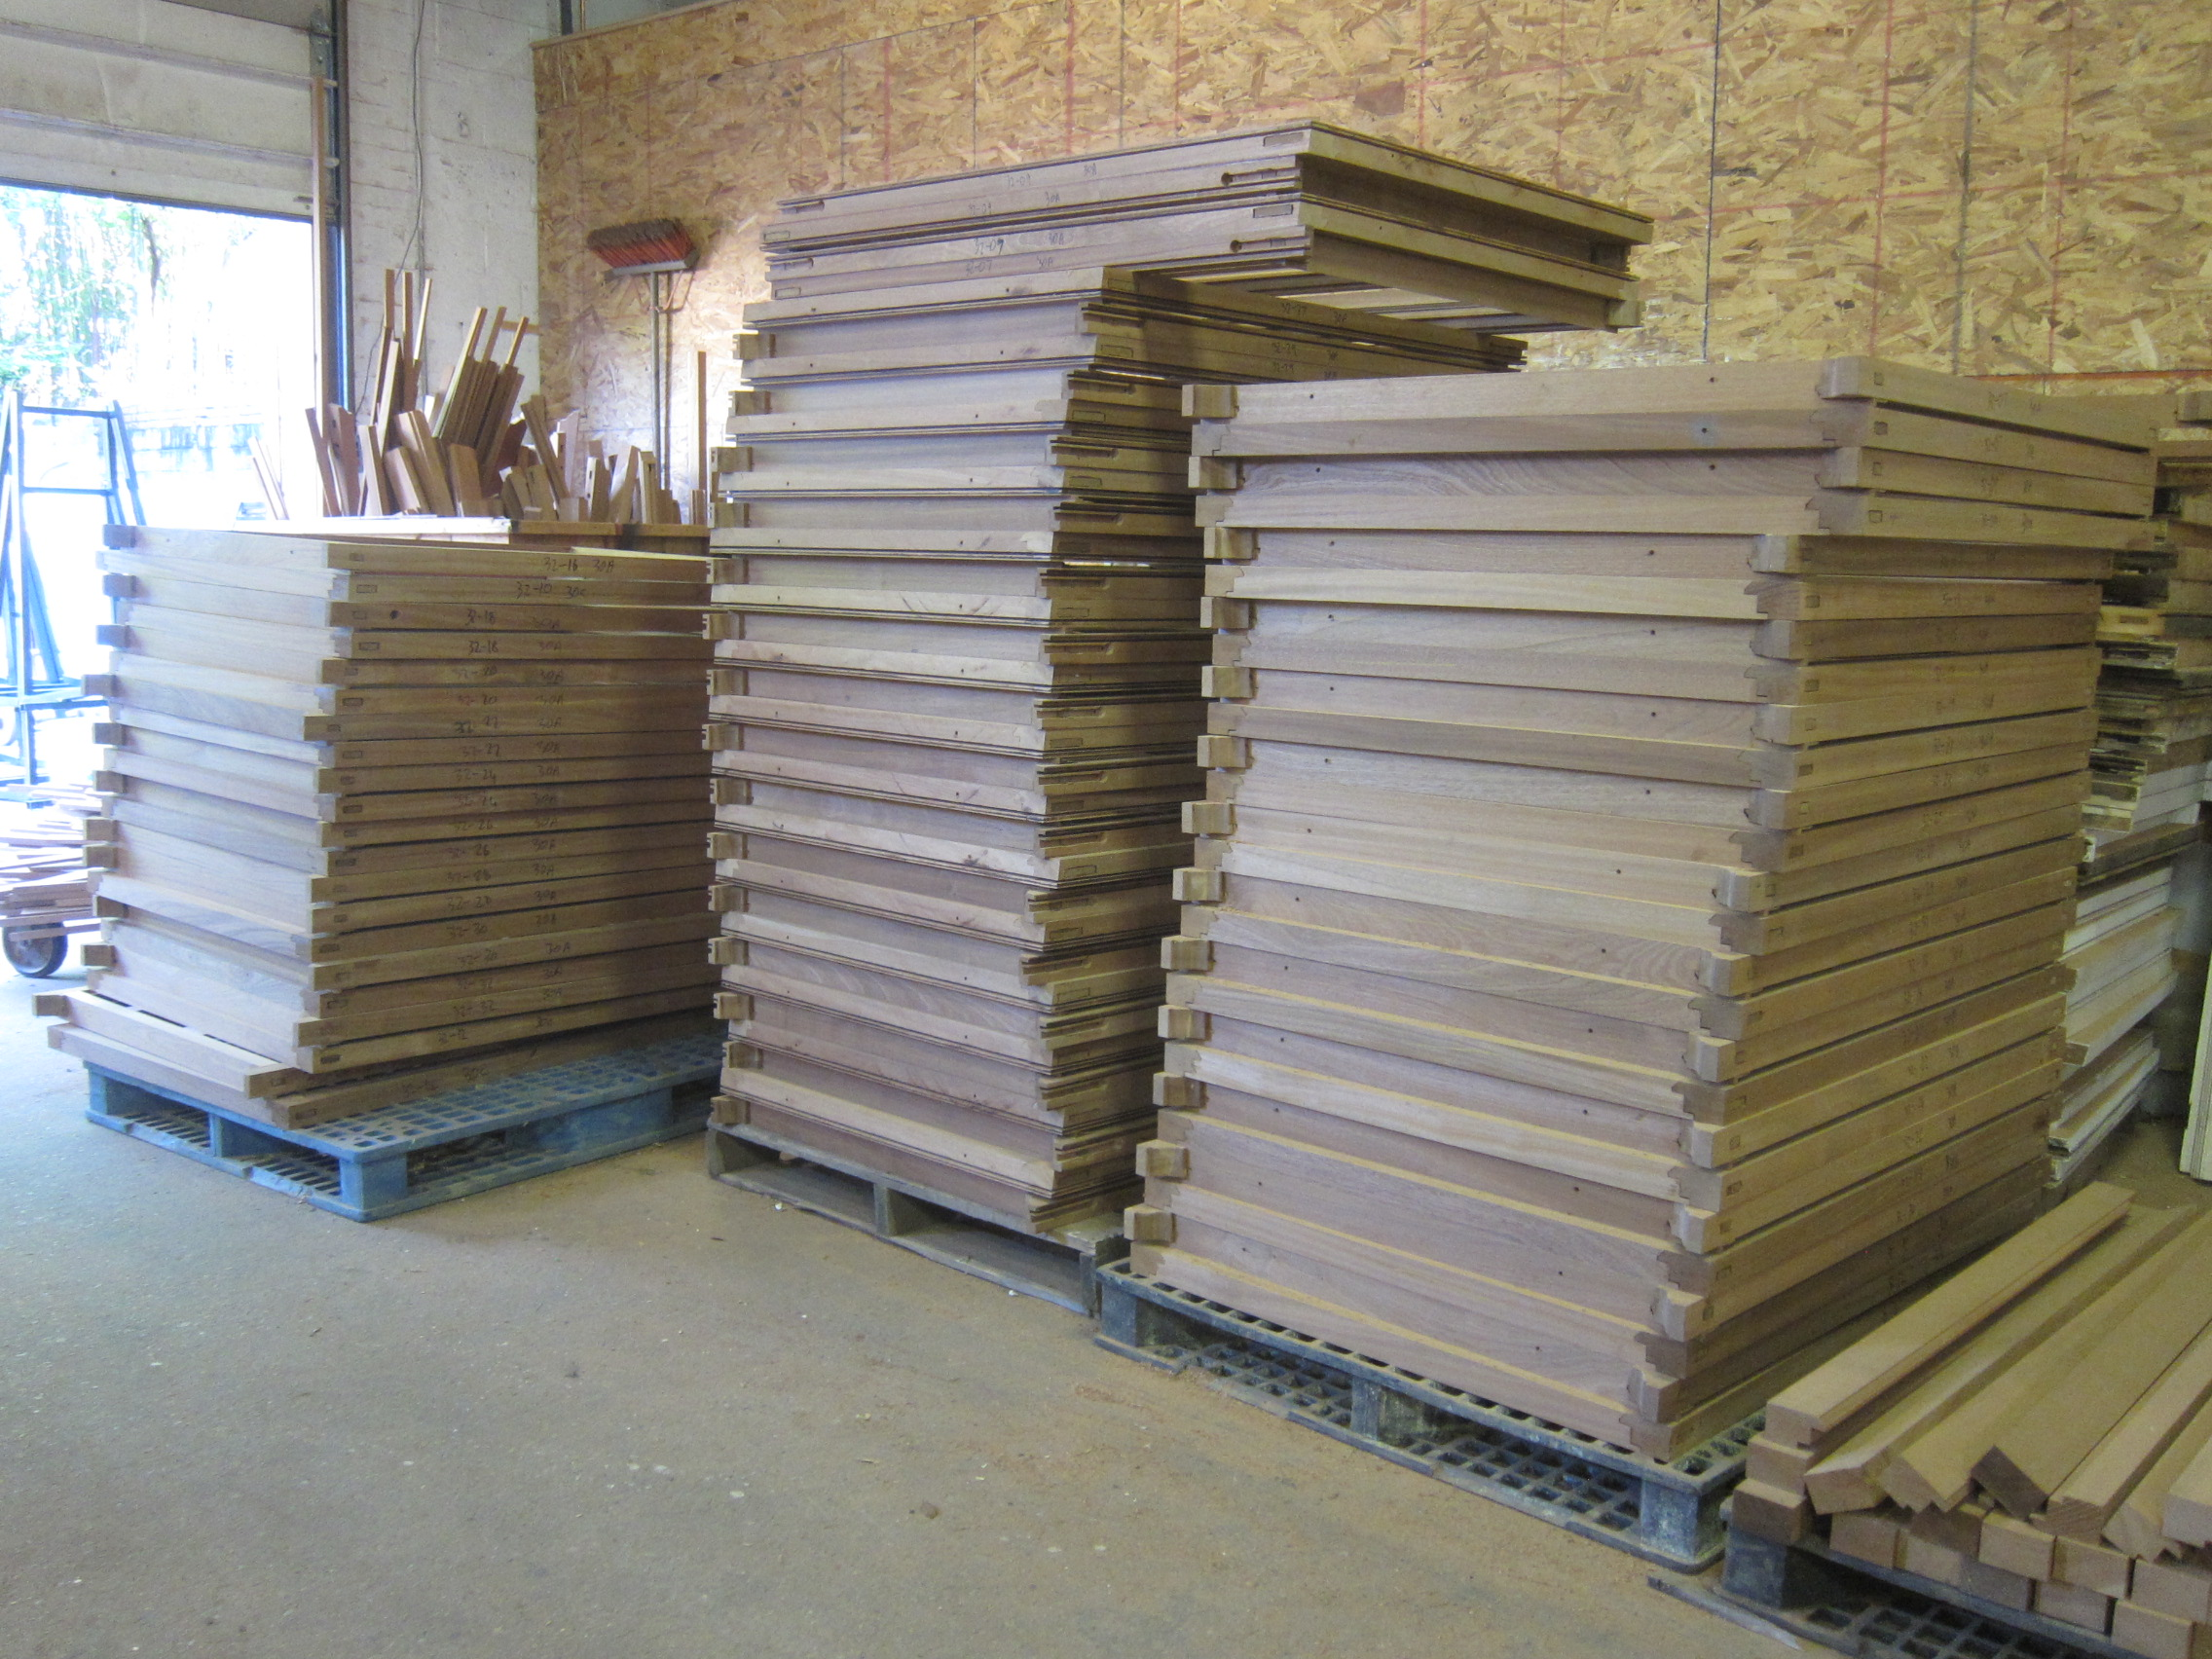 We produced 3600 sash like these, all bottom sash were made operable.